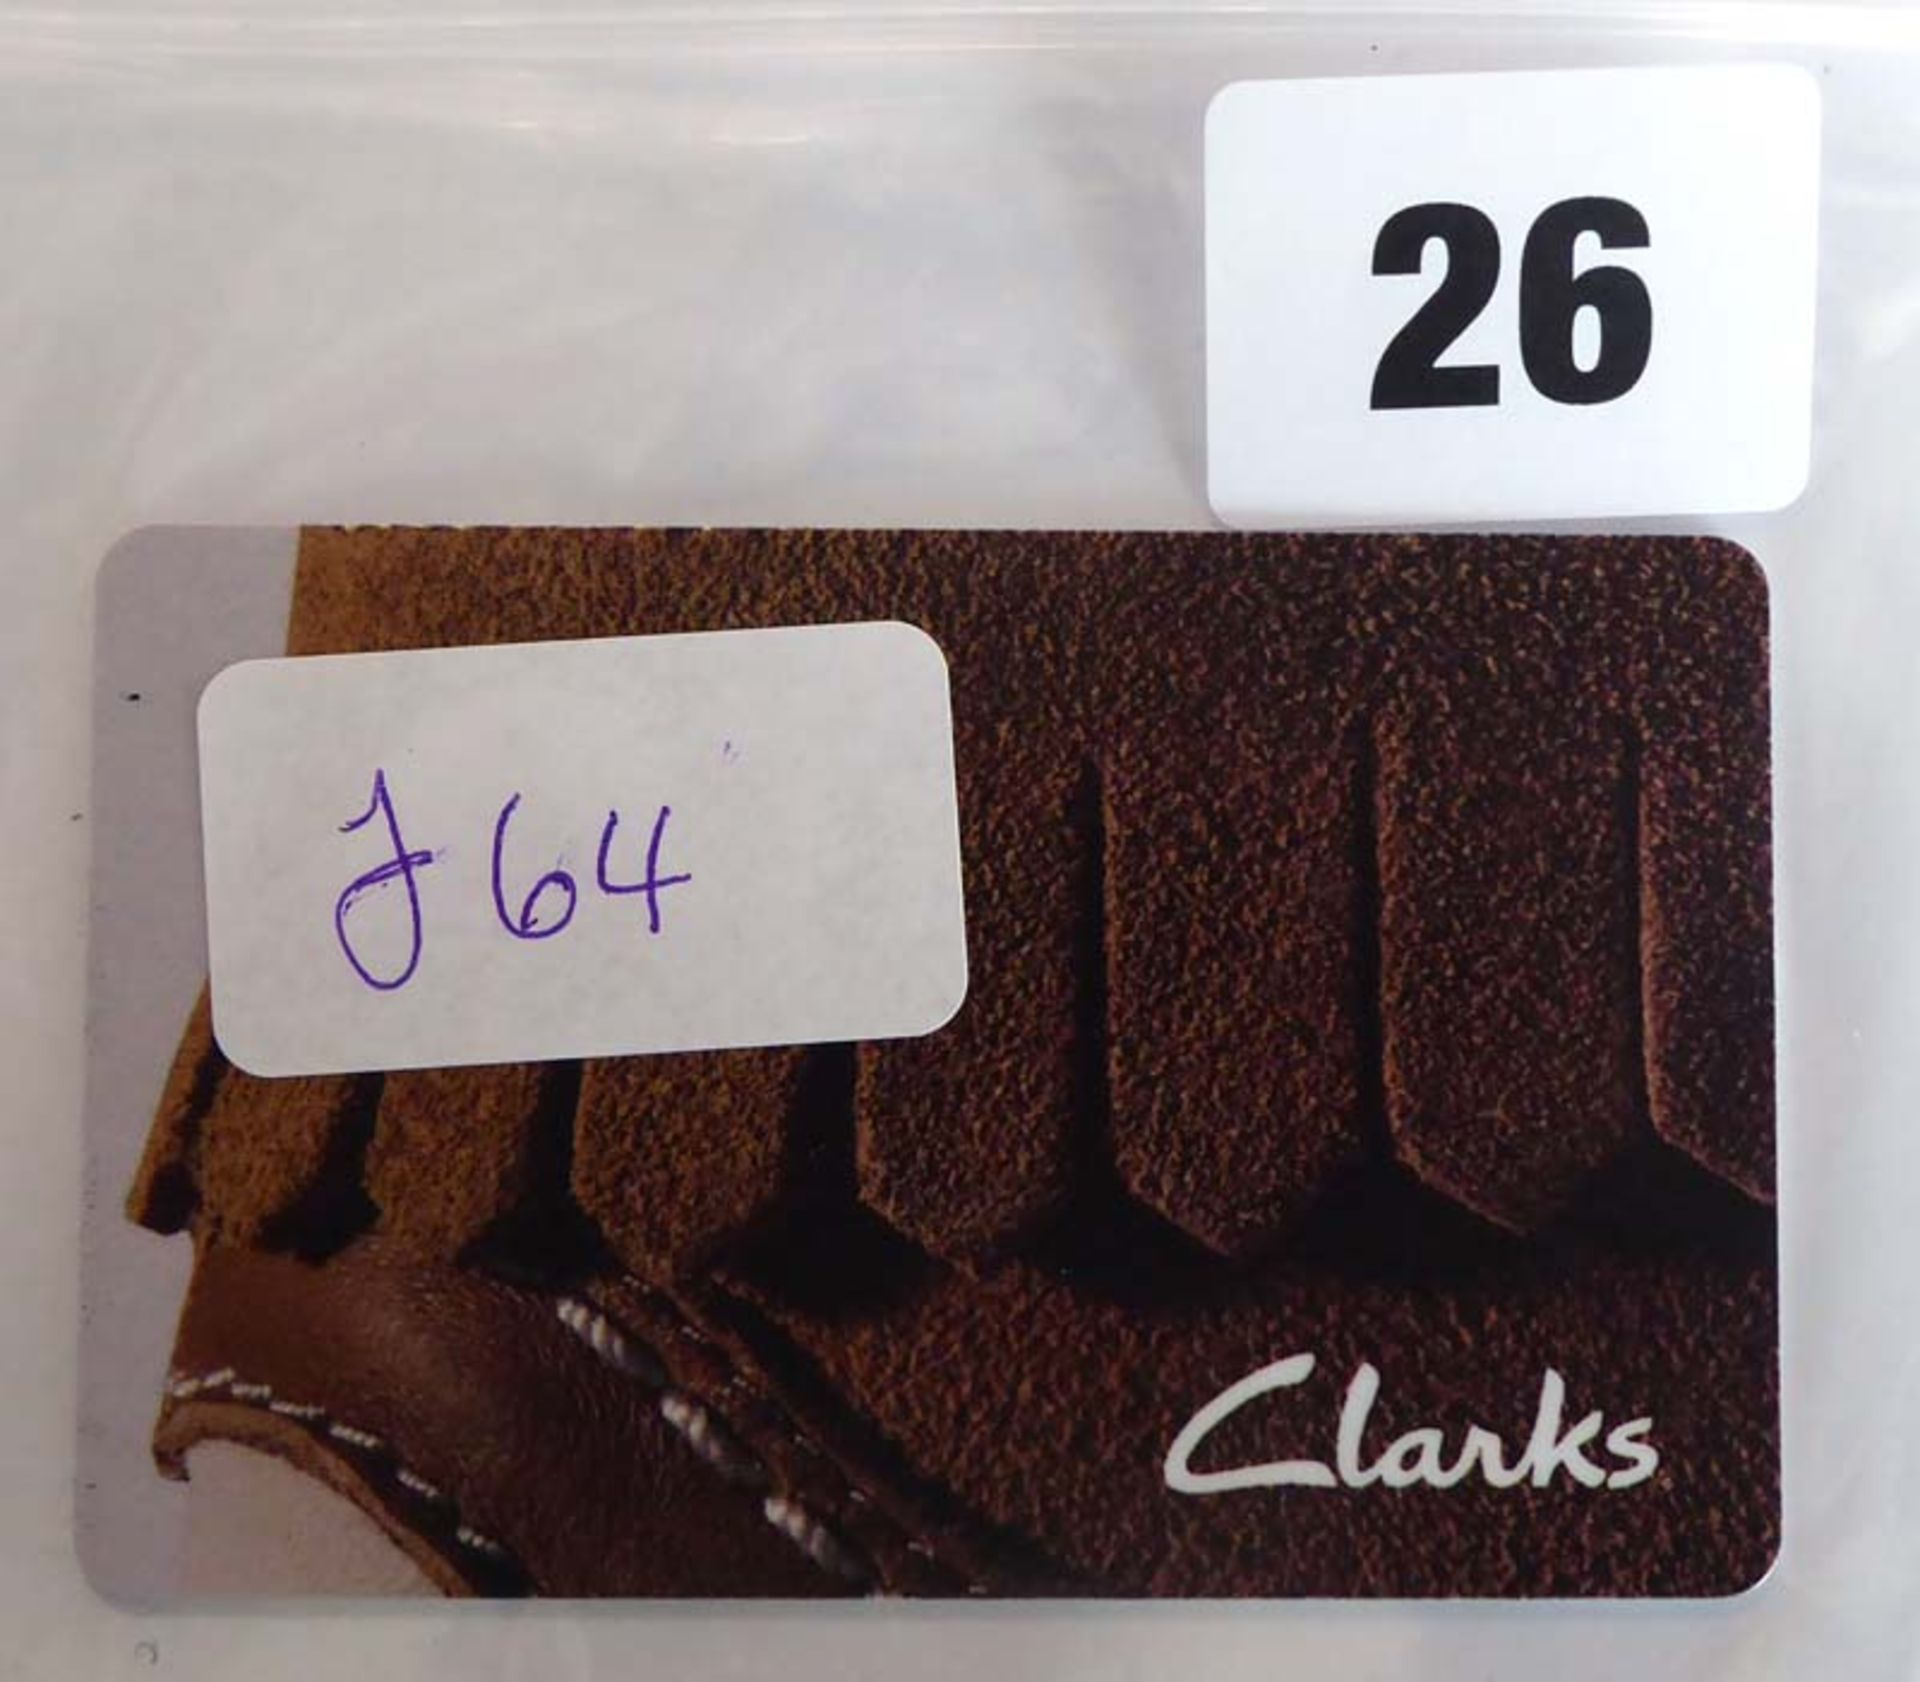 Lot 26 - Clarks (x1) - Total face value £64